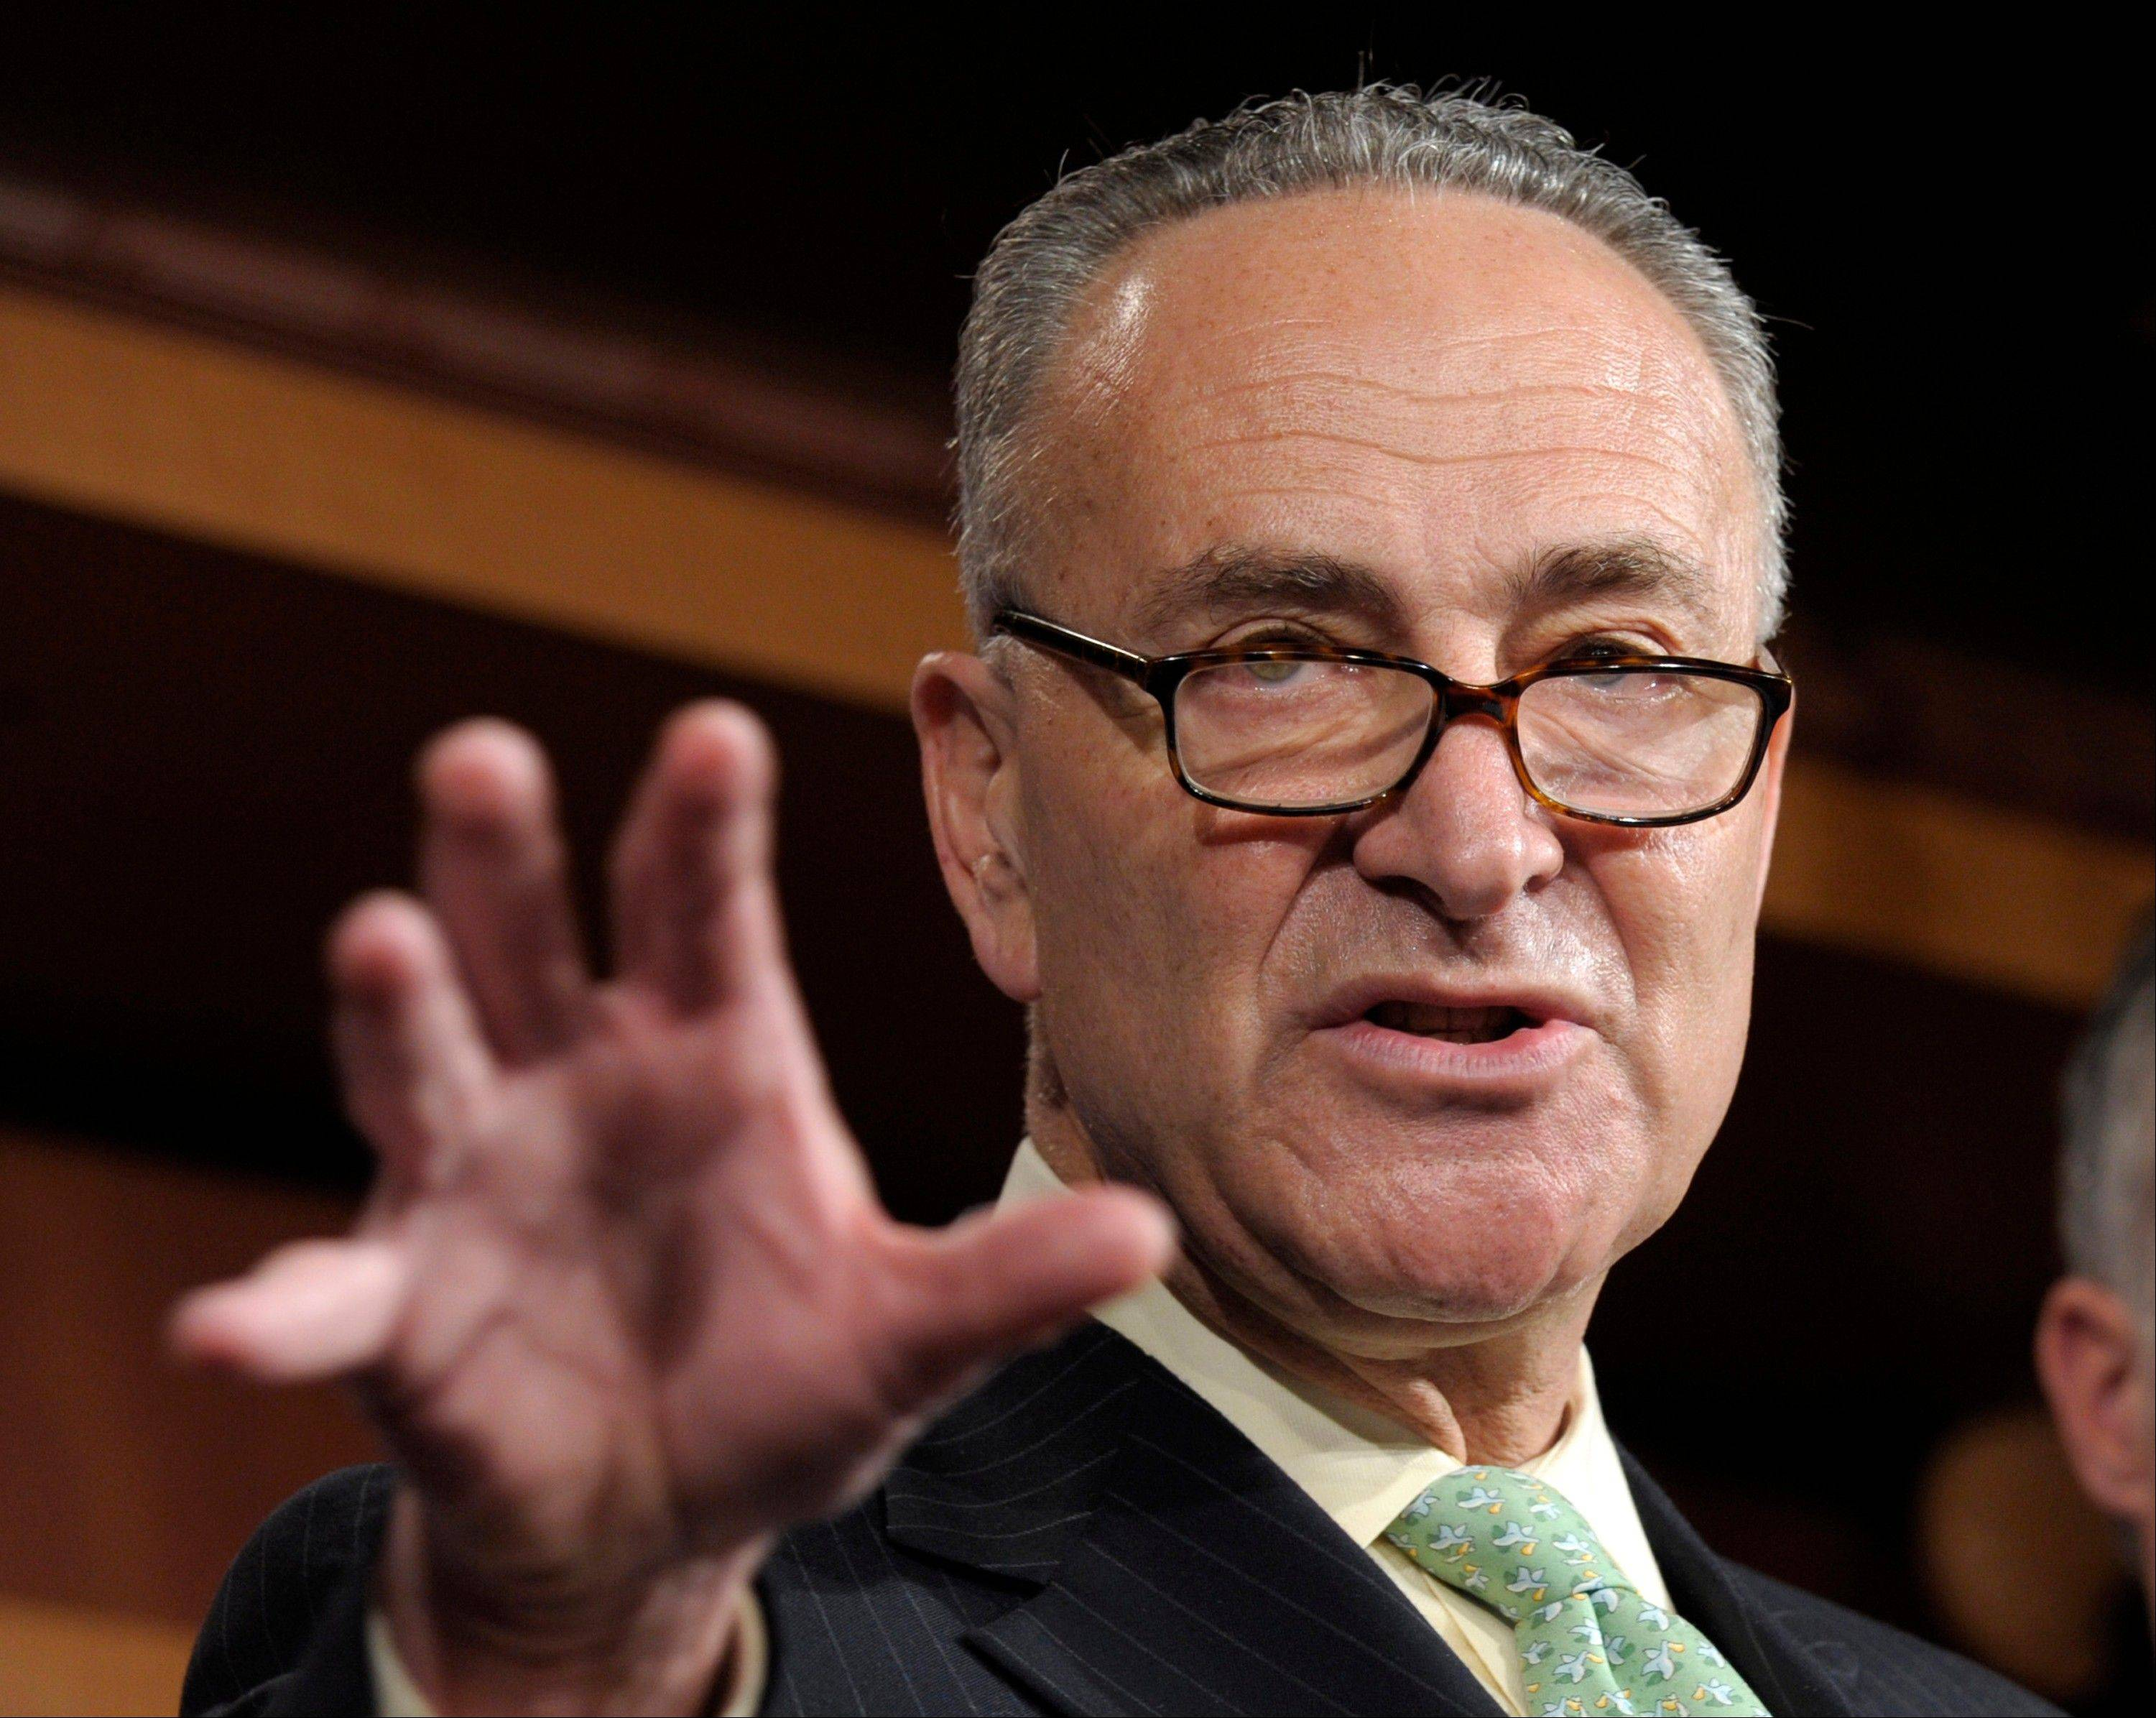 Sen. Charles Schumer, of New York, is among Democrats who want to push tax cuts through the Senate for companies that hire new workers, give raises or buy major new equipment this year.